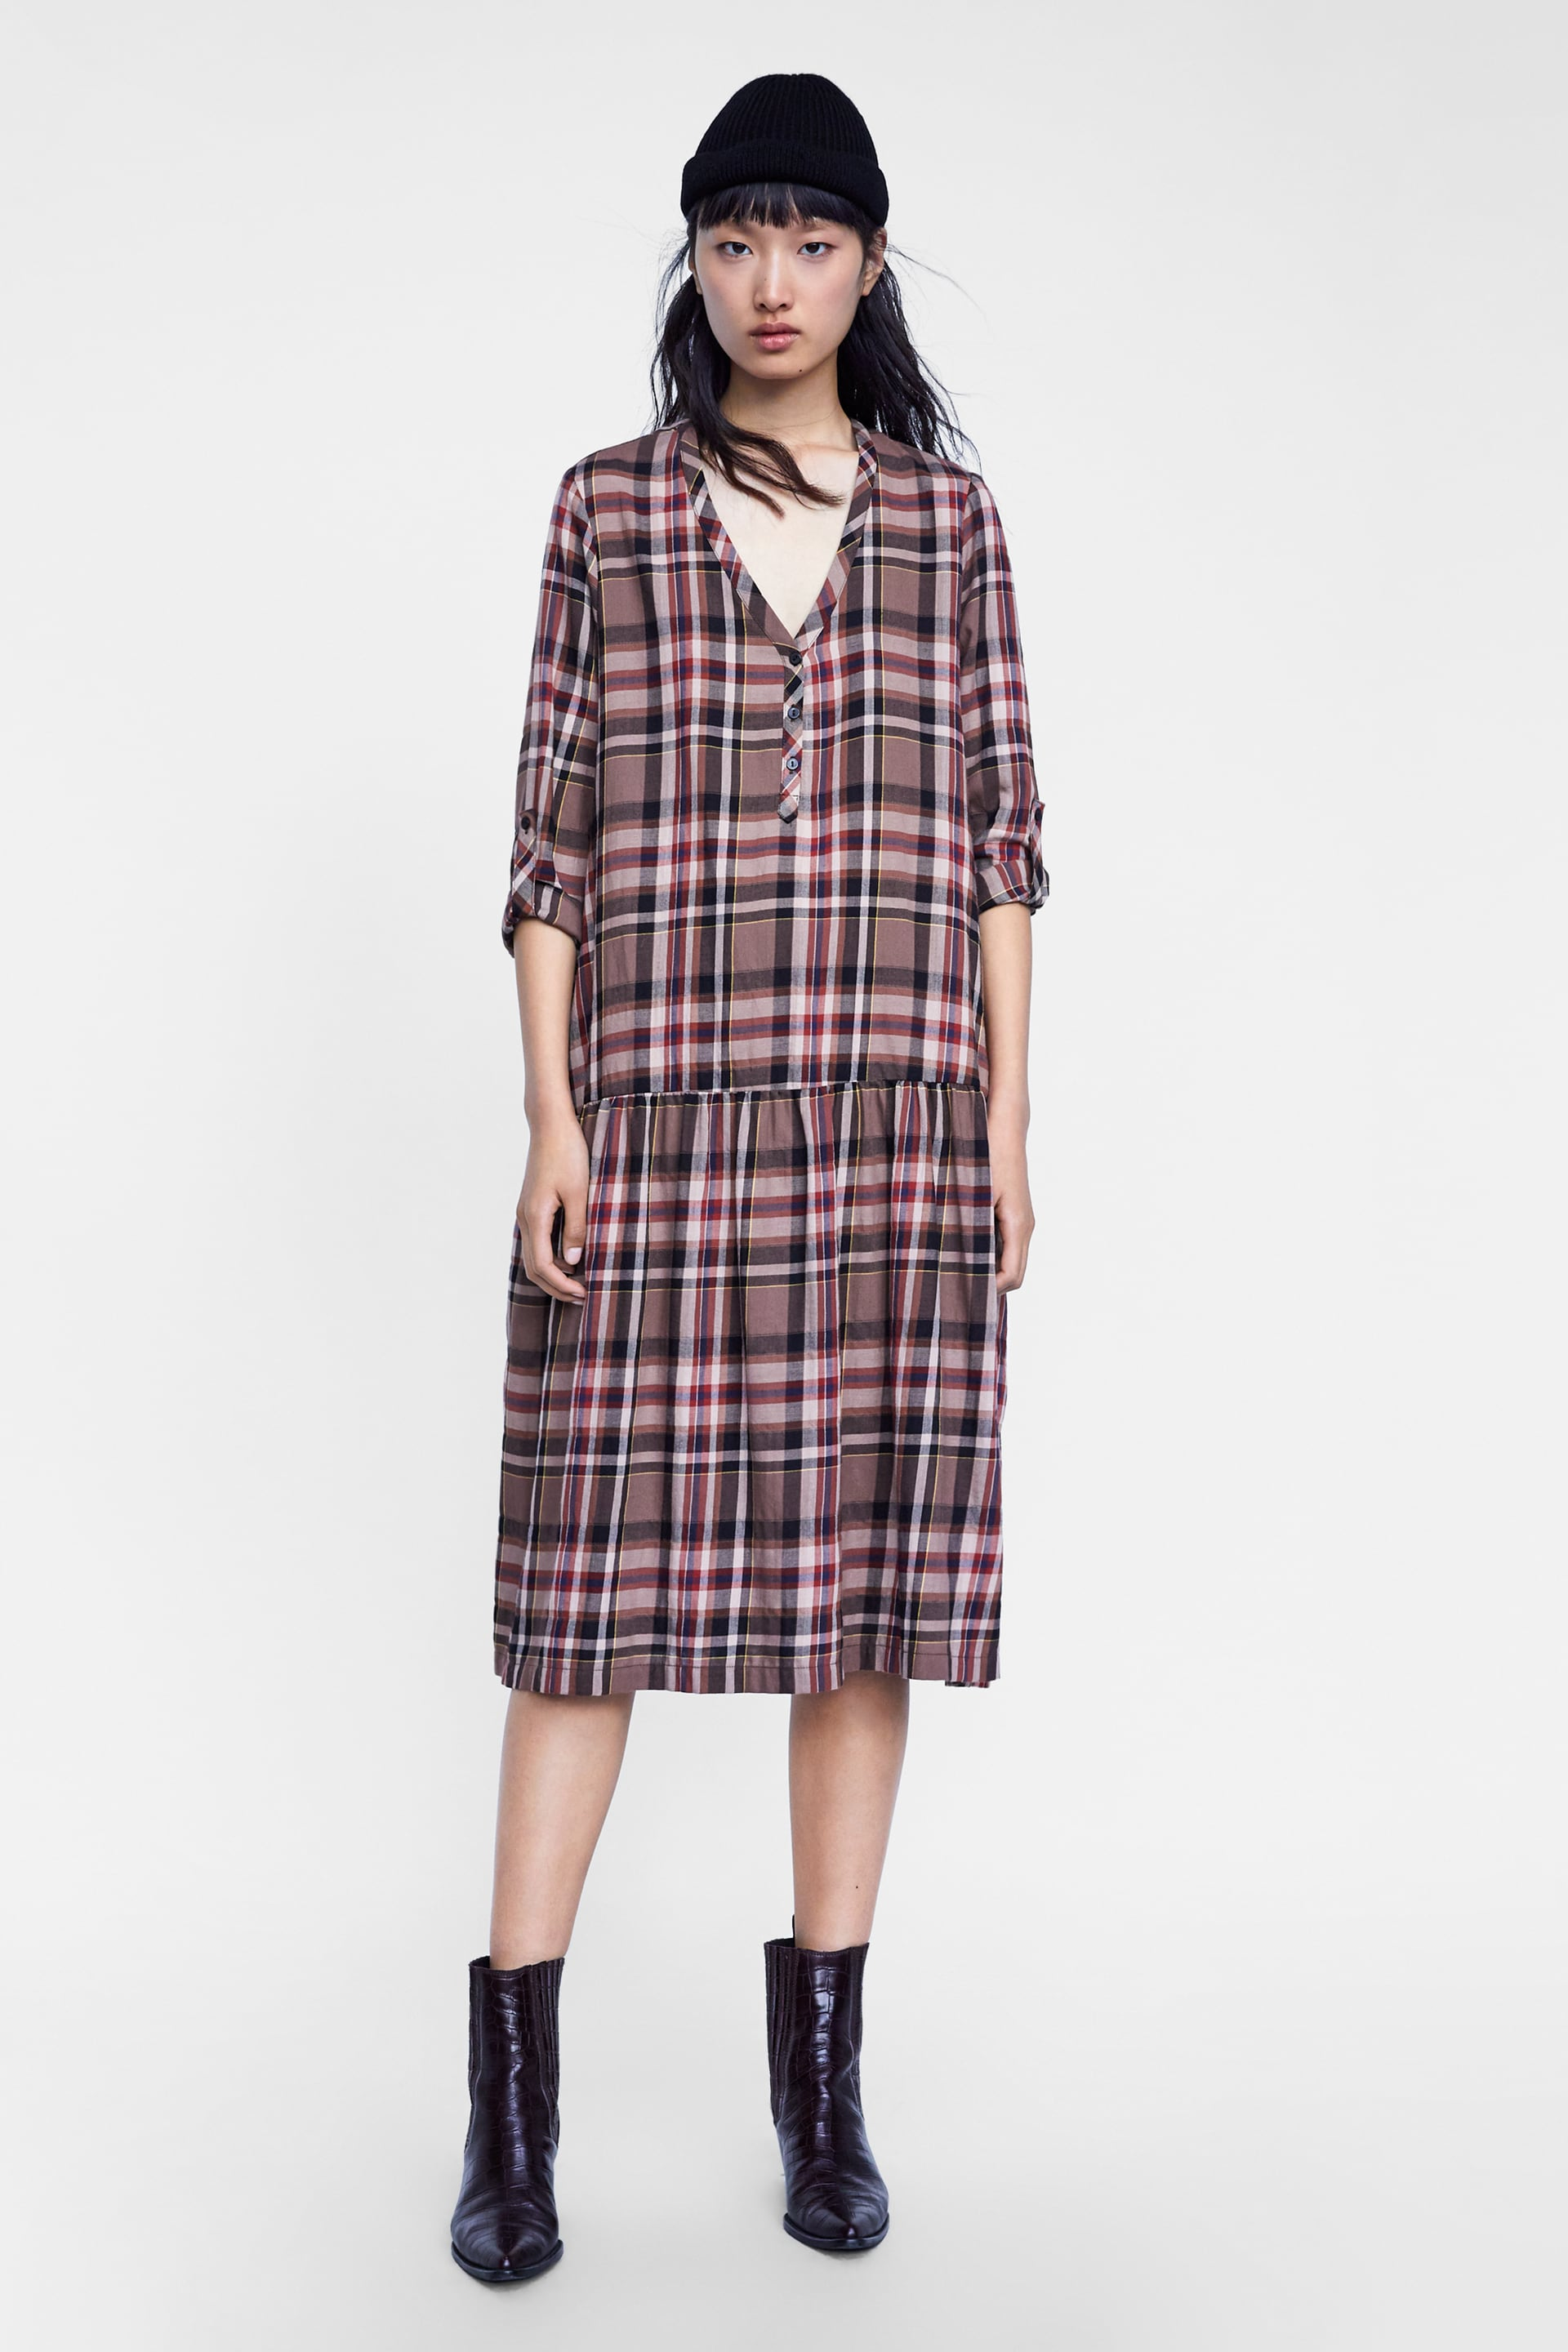 988216bb Zara DRESS ZW PREMIUM LONG CHECK at £39.99 | love the brands